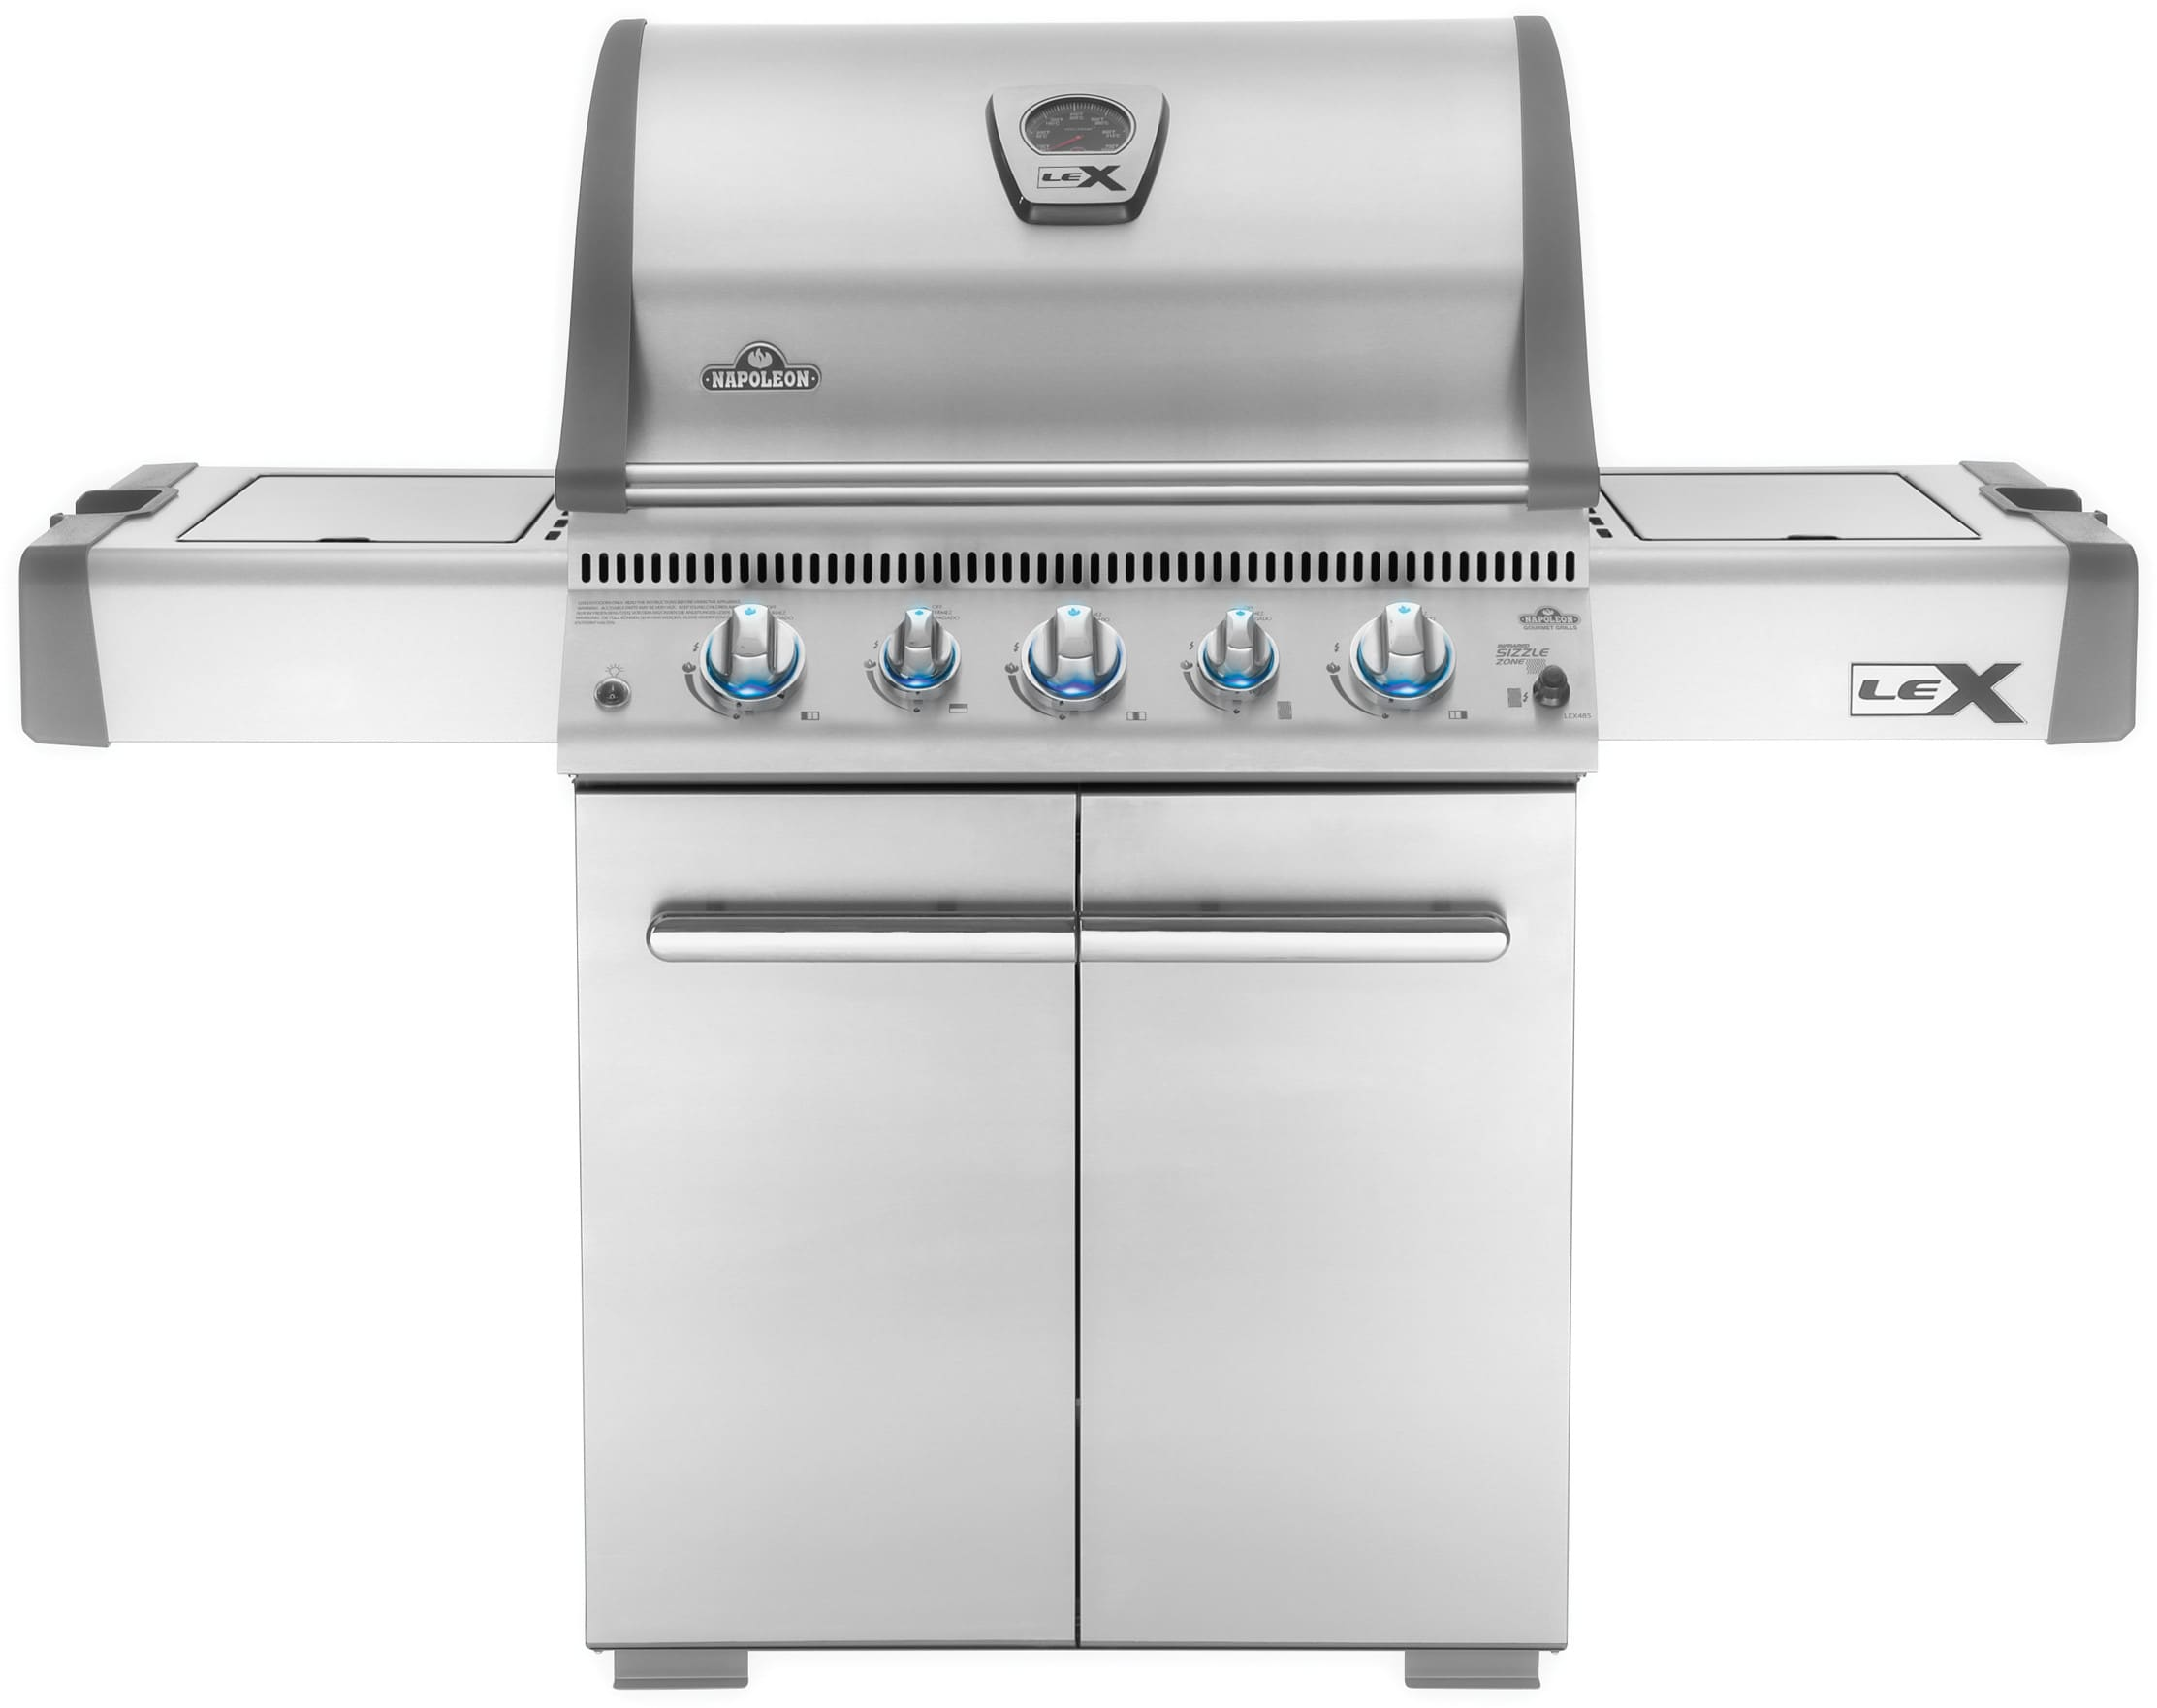 rack charcoal grill wolfwise steel products wolfwisestore pmfqlvl stainless folding portable